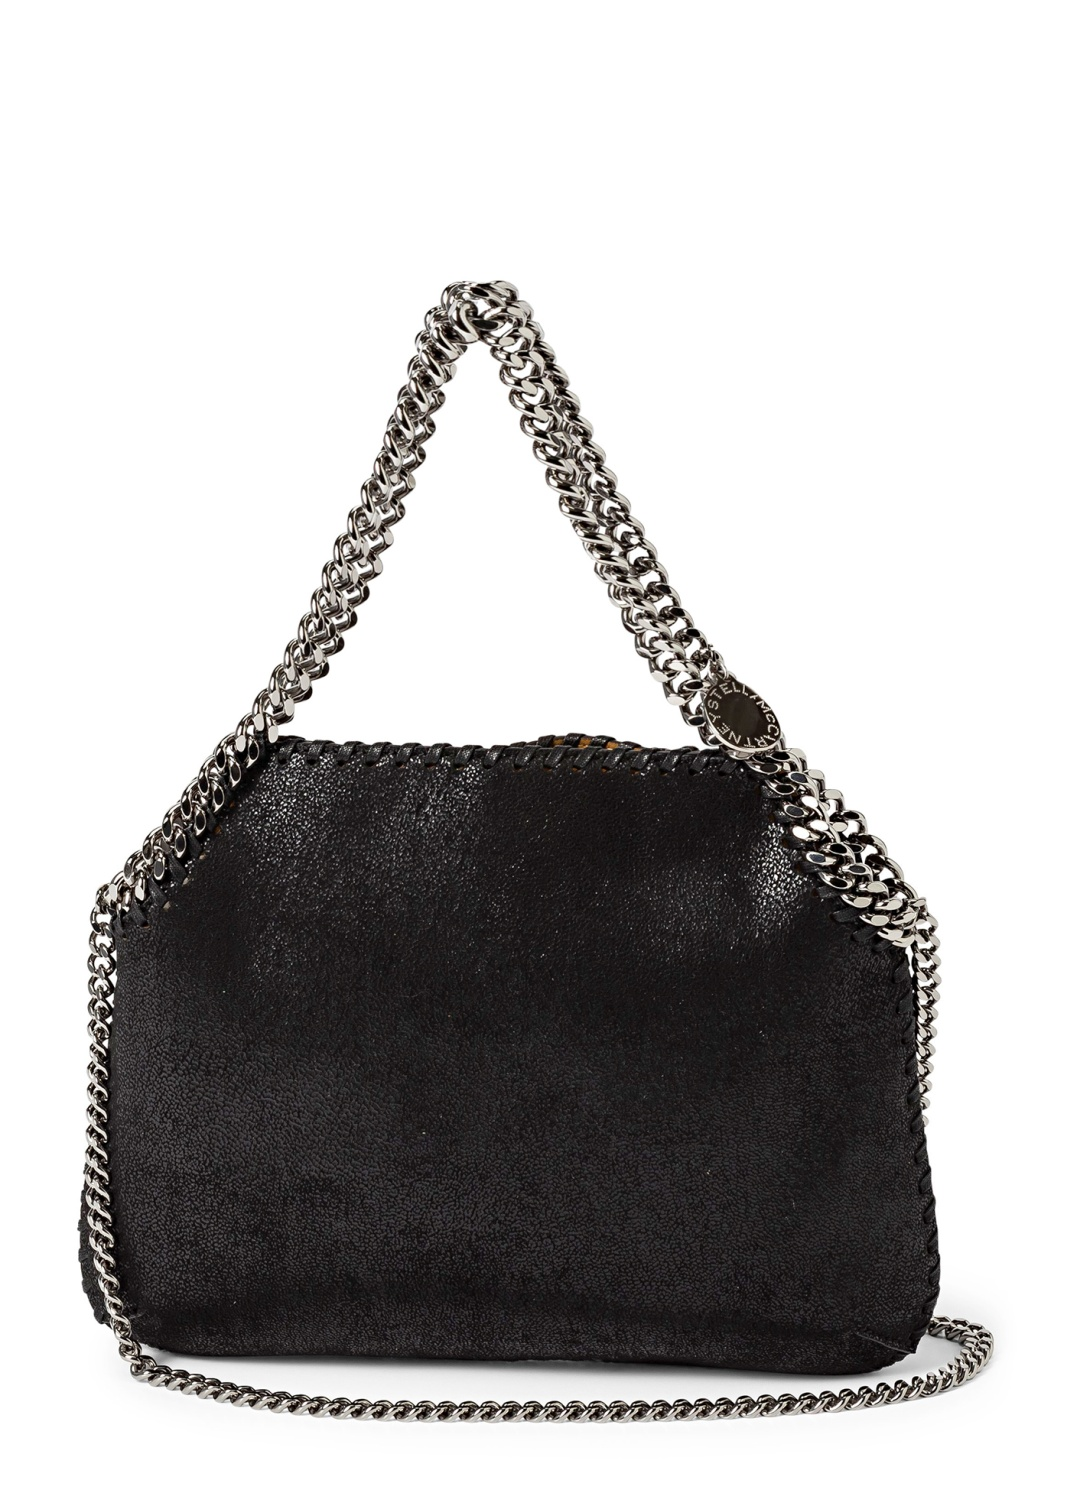 New Mini Tote Falabella Novelty image number 0